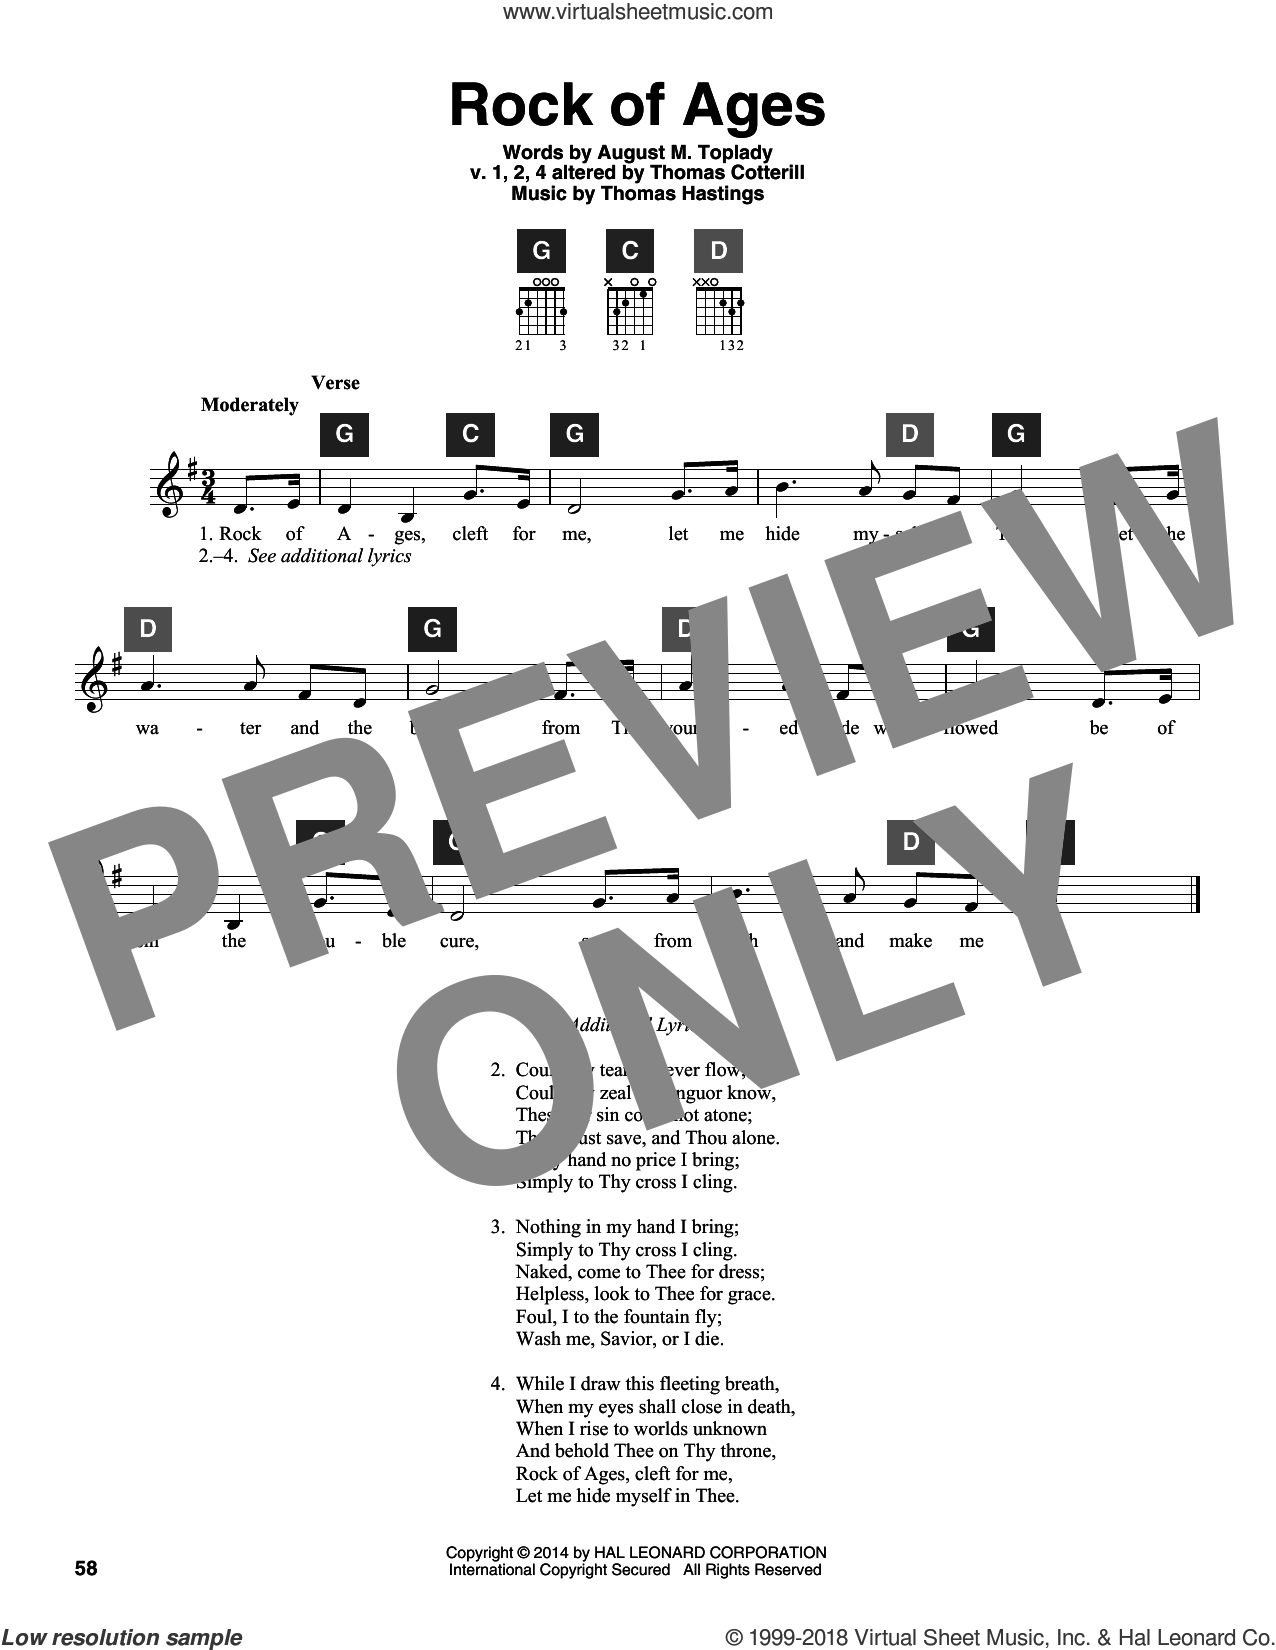 Rock Of Ages sheet music for guitar solo (ChordBuddy system) by V.1,2,4 Thomas Cotterill